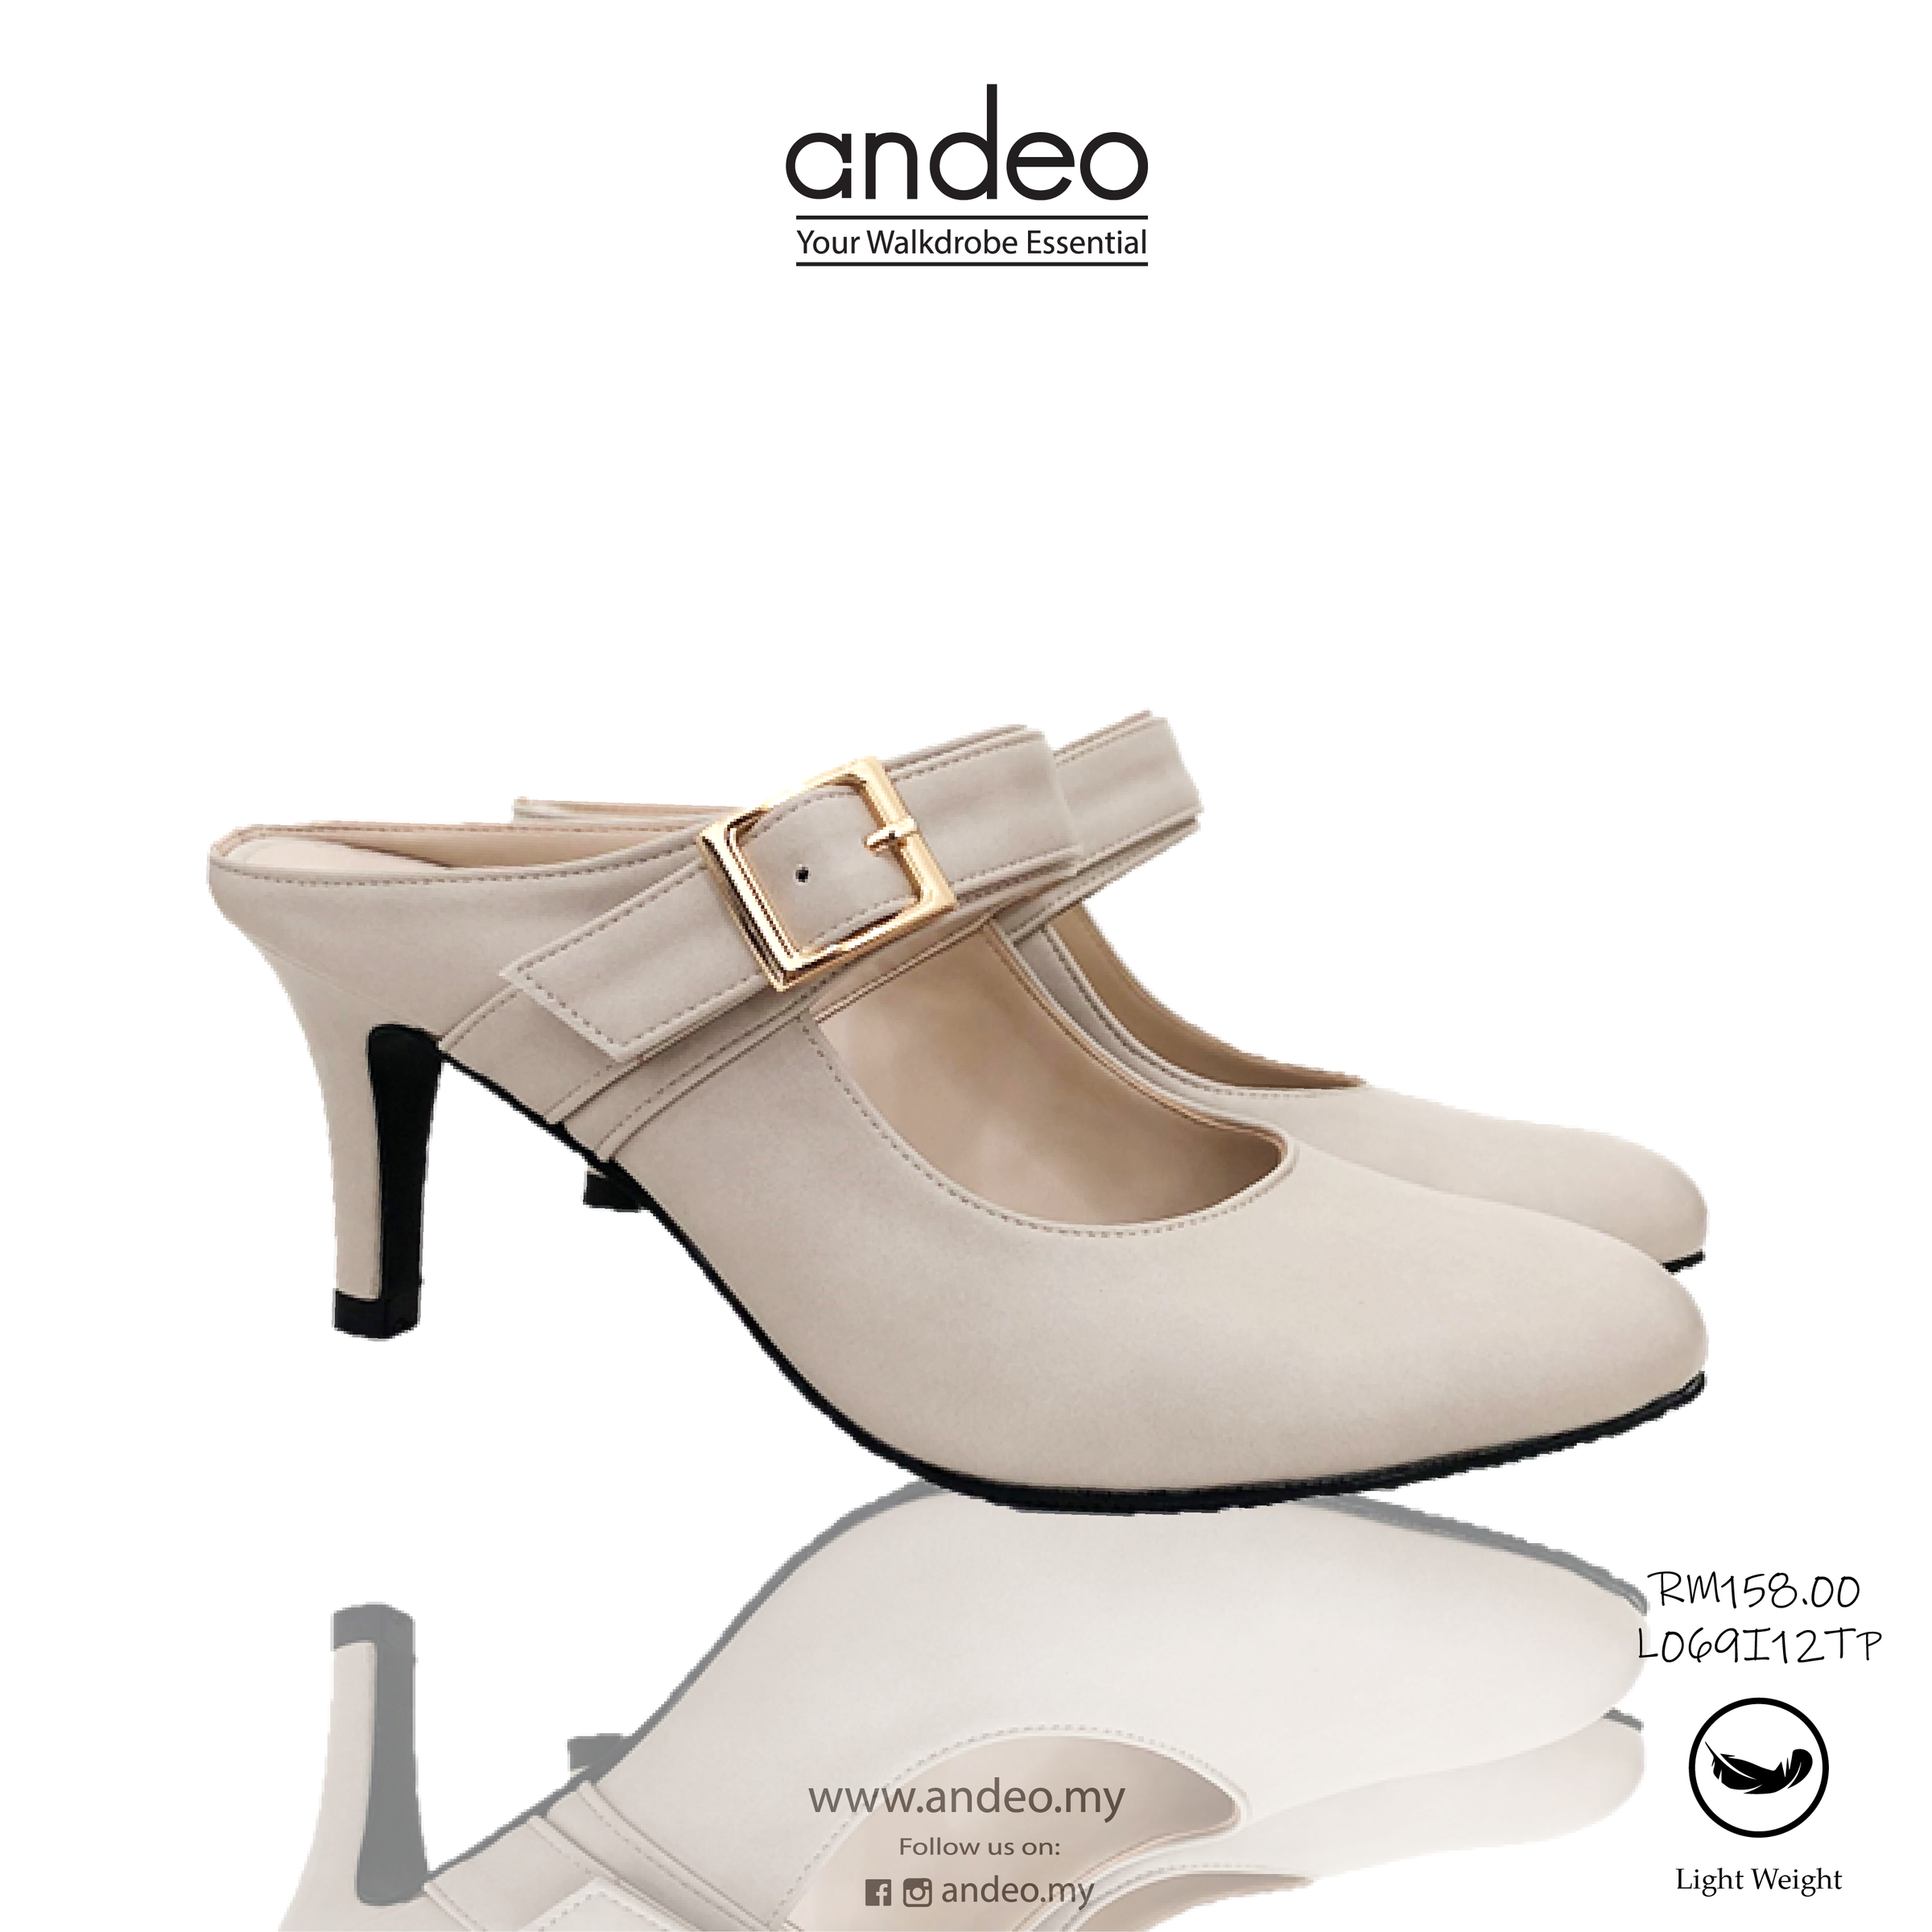 ANDEO FB PRODUCT L069I12-03.png